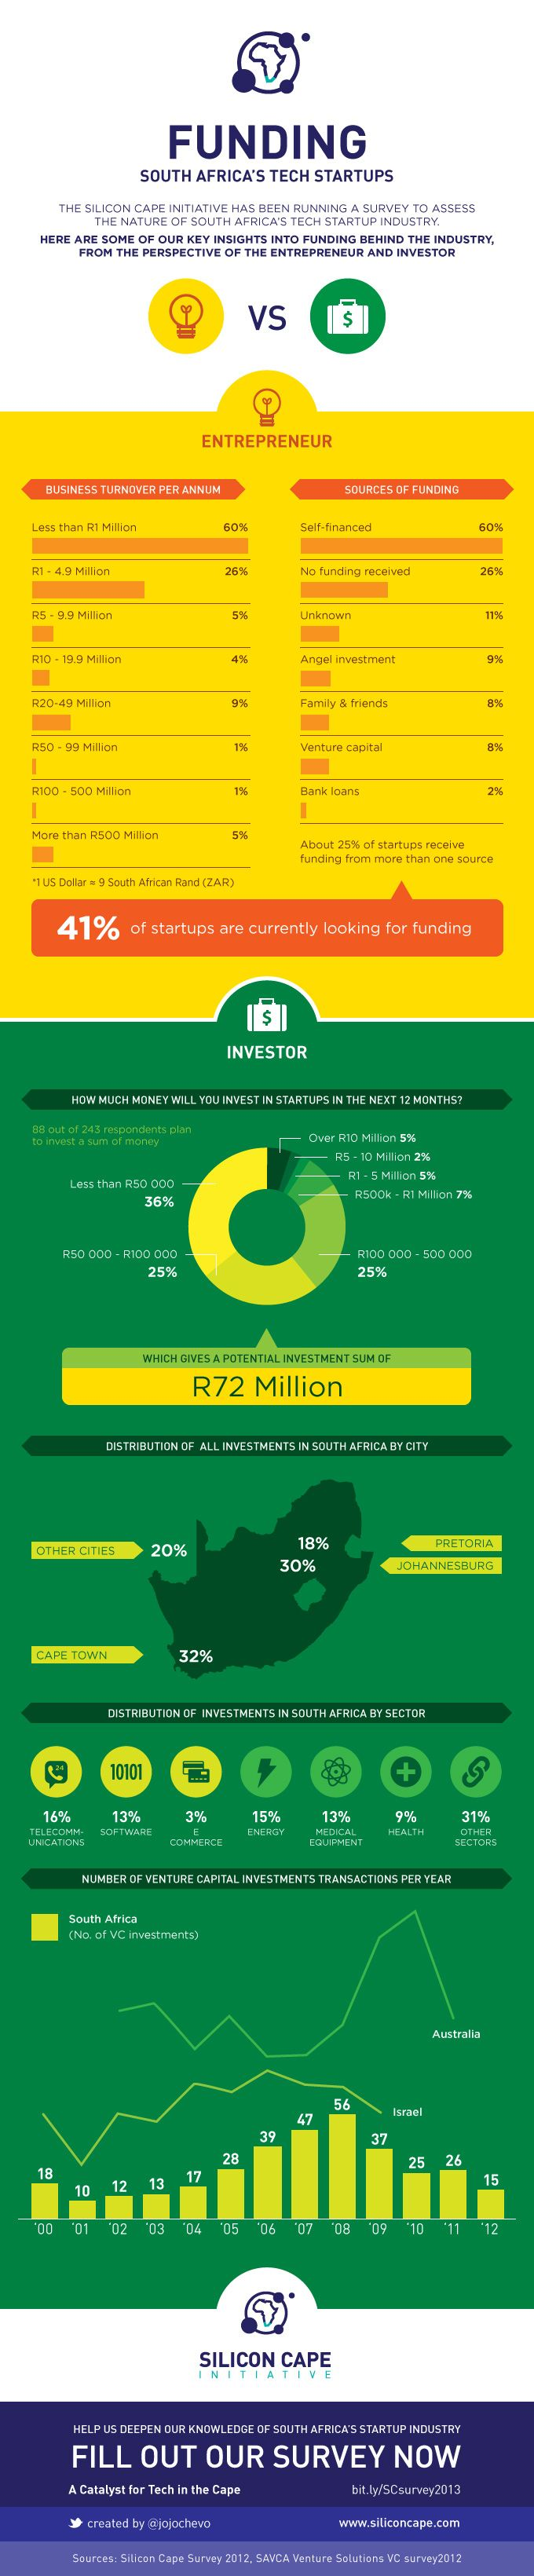 Funding Digital Businesses in South Africa